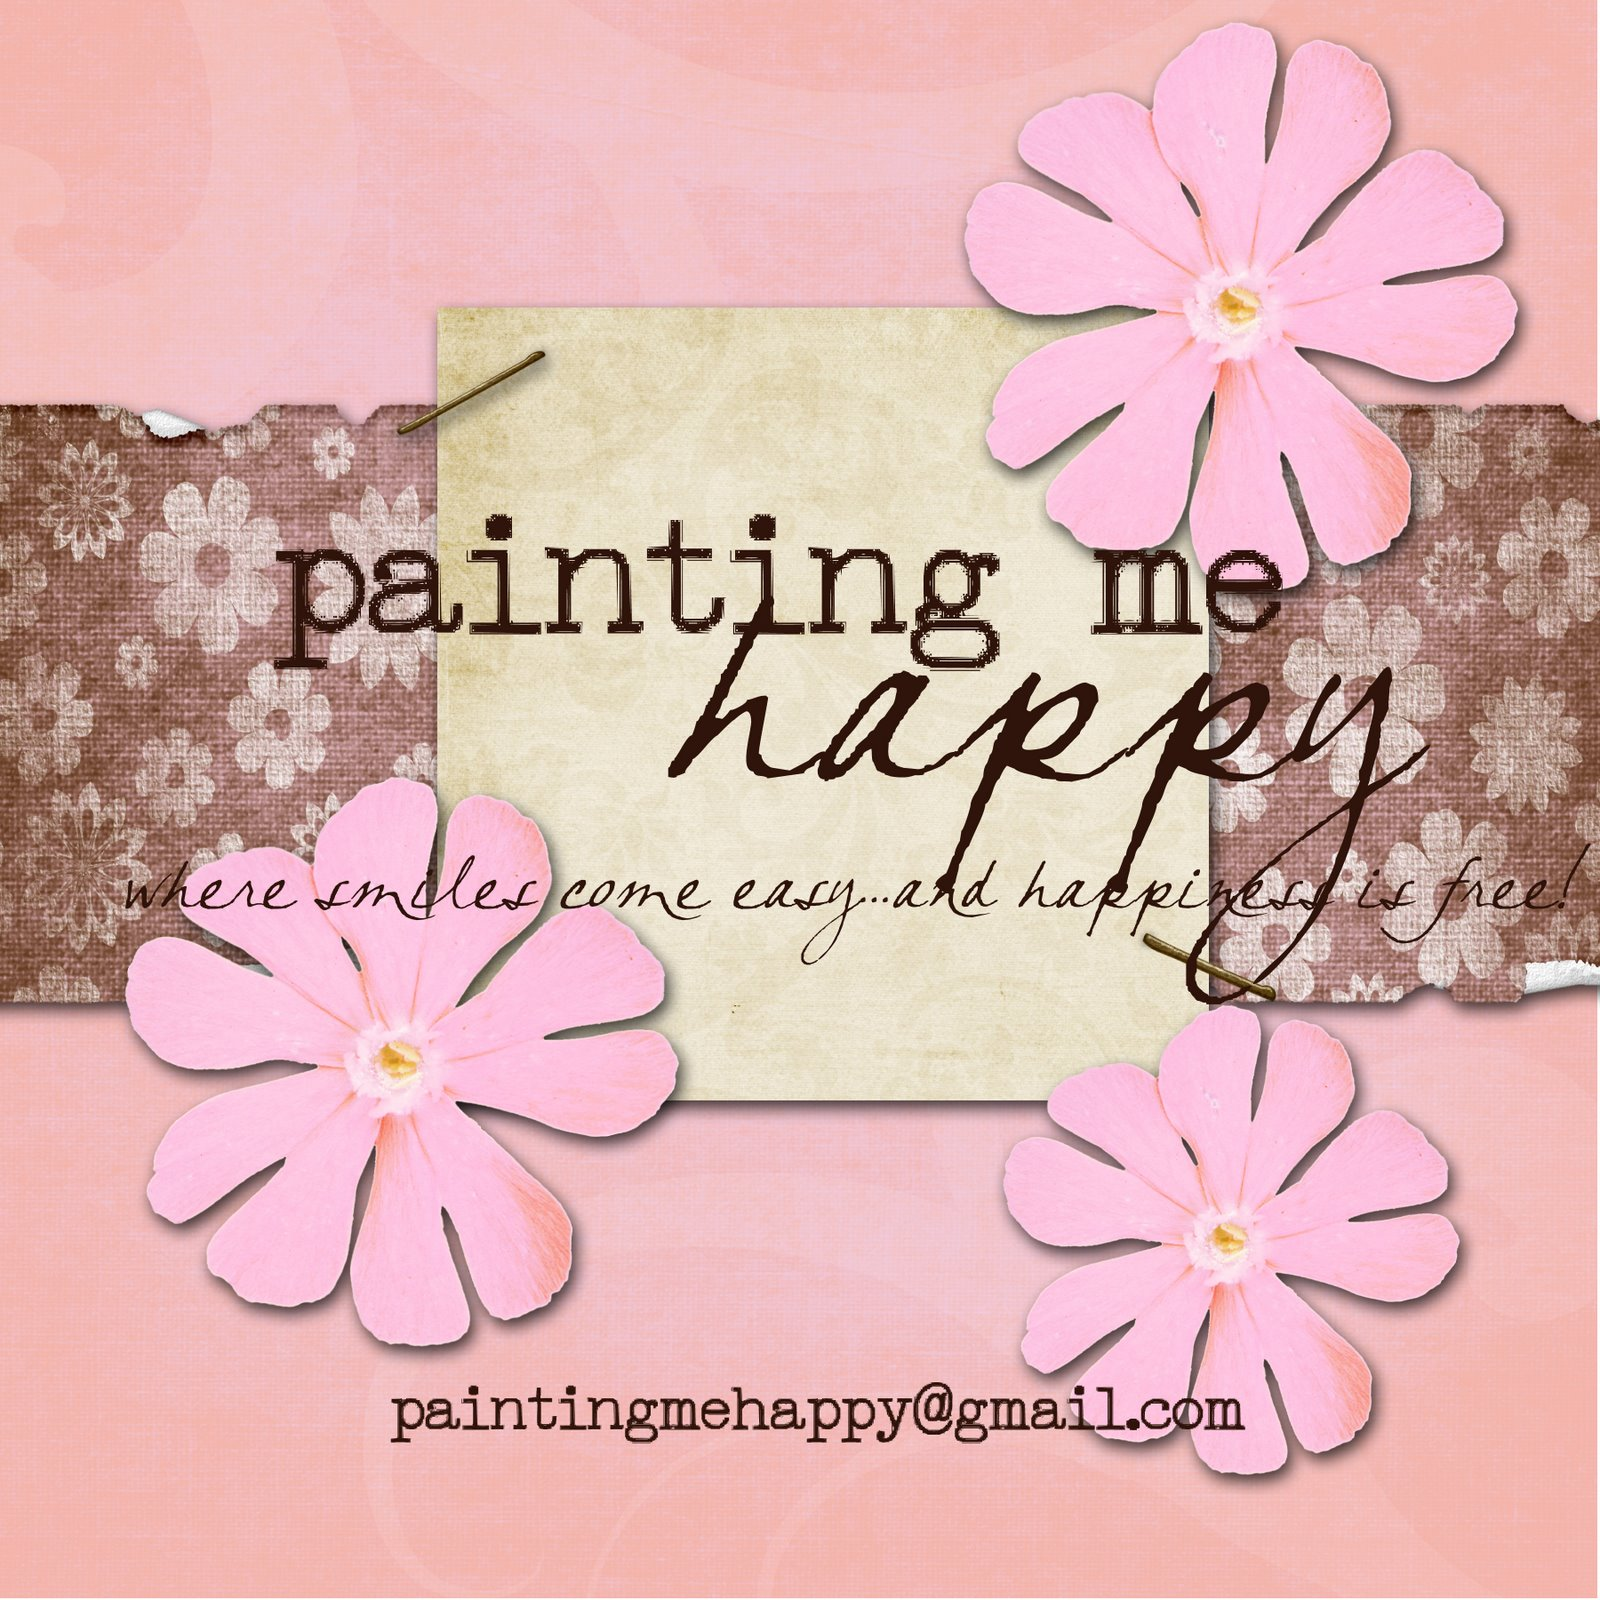 paintingmehappy